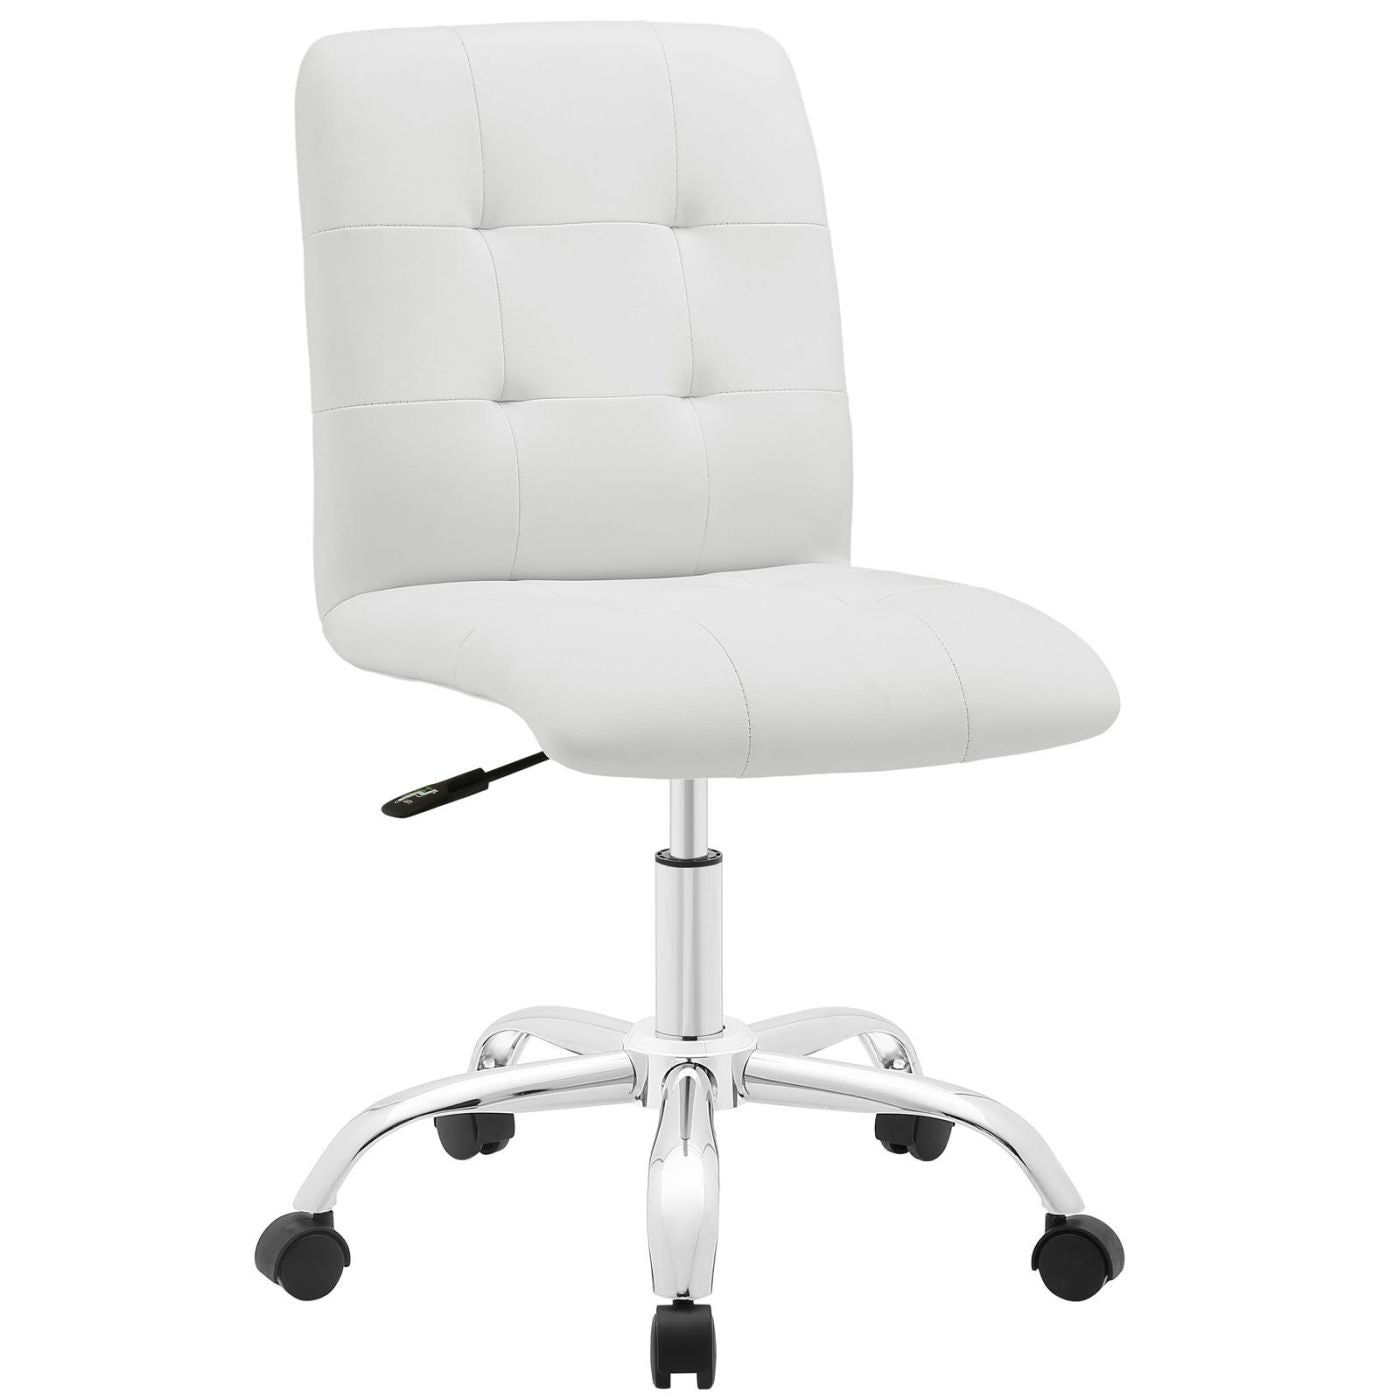 Fantastic Modway Office Chairs On Sale Eei 1533 Whi Prim Modern Armless Mid Back Office Chair Padded Faux Leather Only Only 107 30 At Contemporary Furniture Machost Co Dining Chair Design Ideas Machostcouk